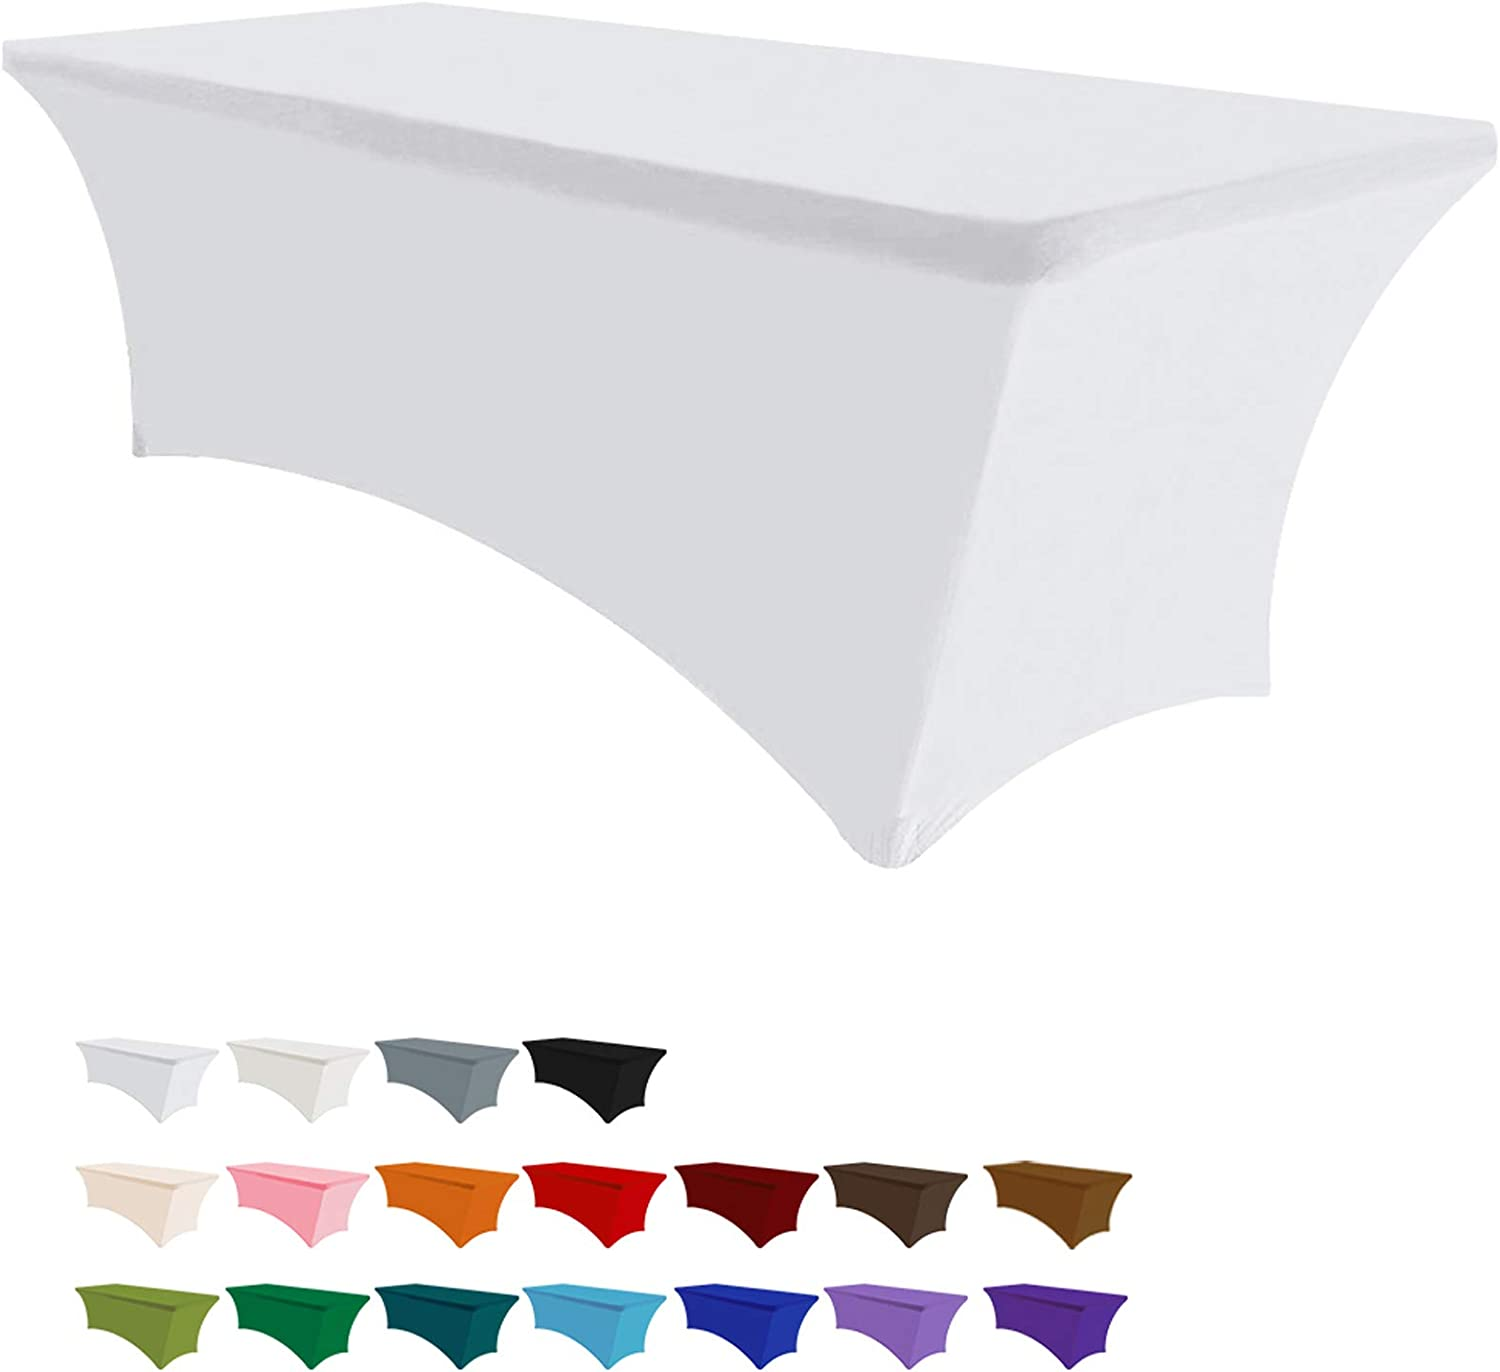 Eurmax 6Ft Rectangular Fitted Spandex Tablecloths Wedding Party Patio Table Covers Event Stretchable Tablecloth (White)